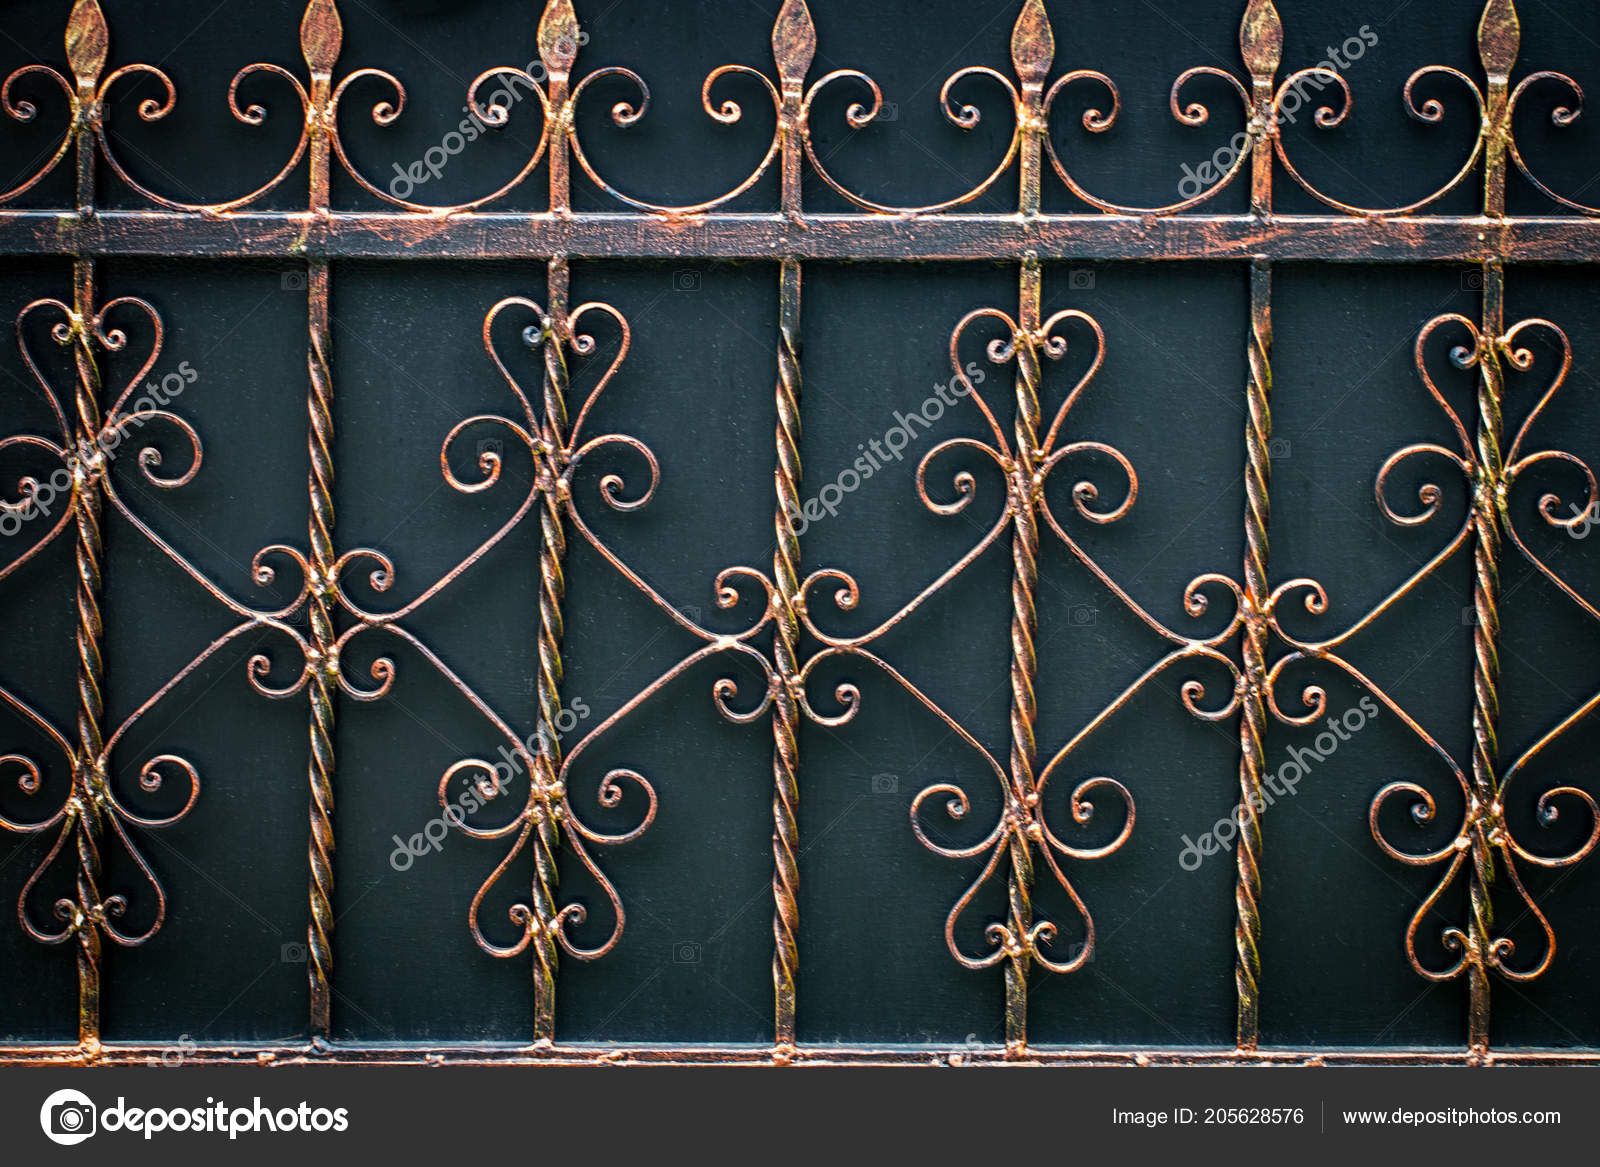 ornate wrought iron gate unusual ornate wrought iron elements metal gate decoration stock photo